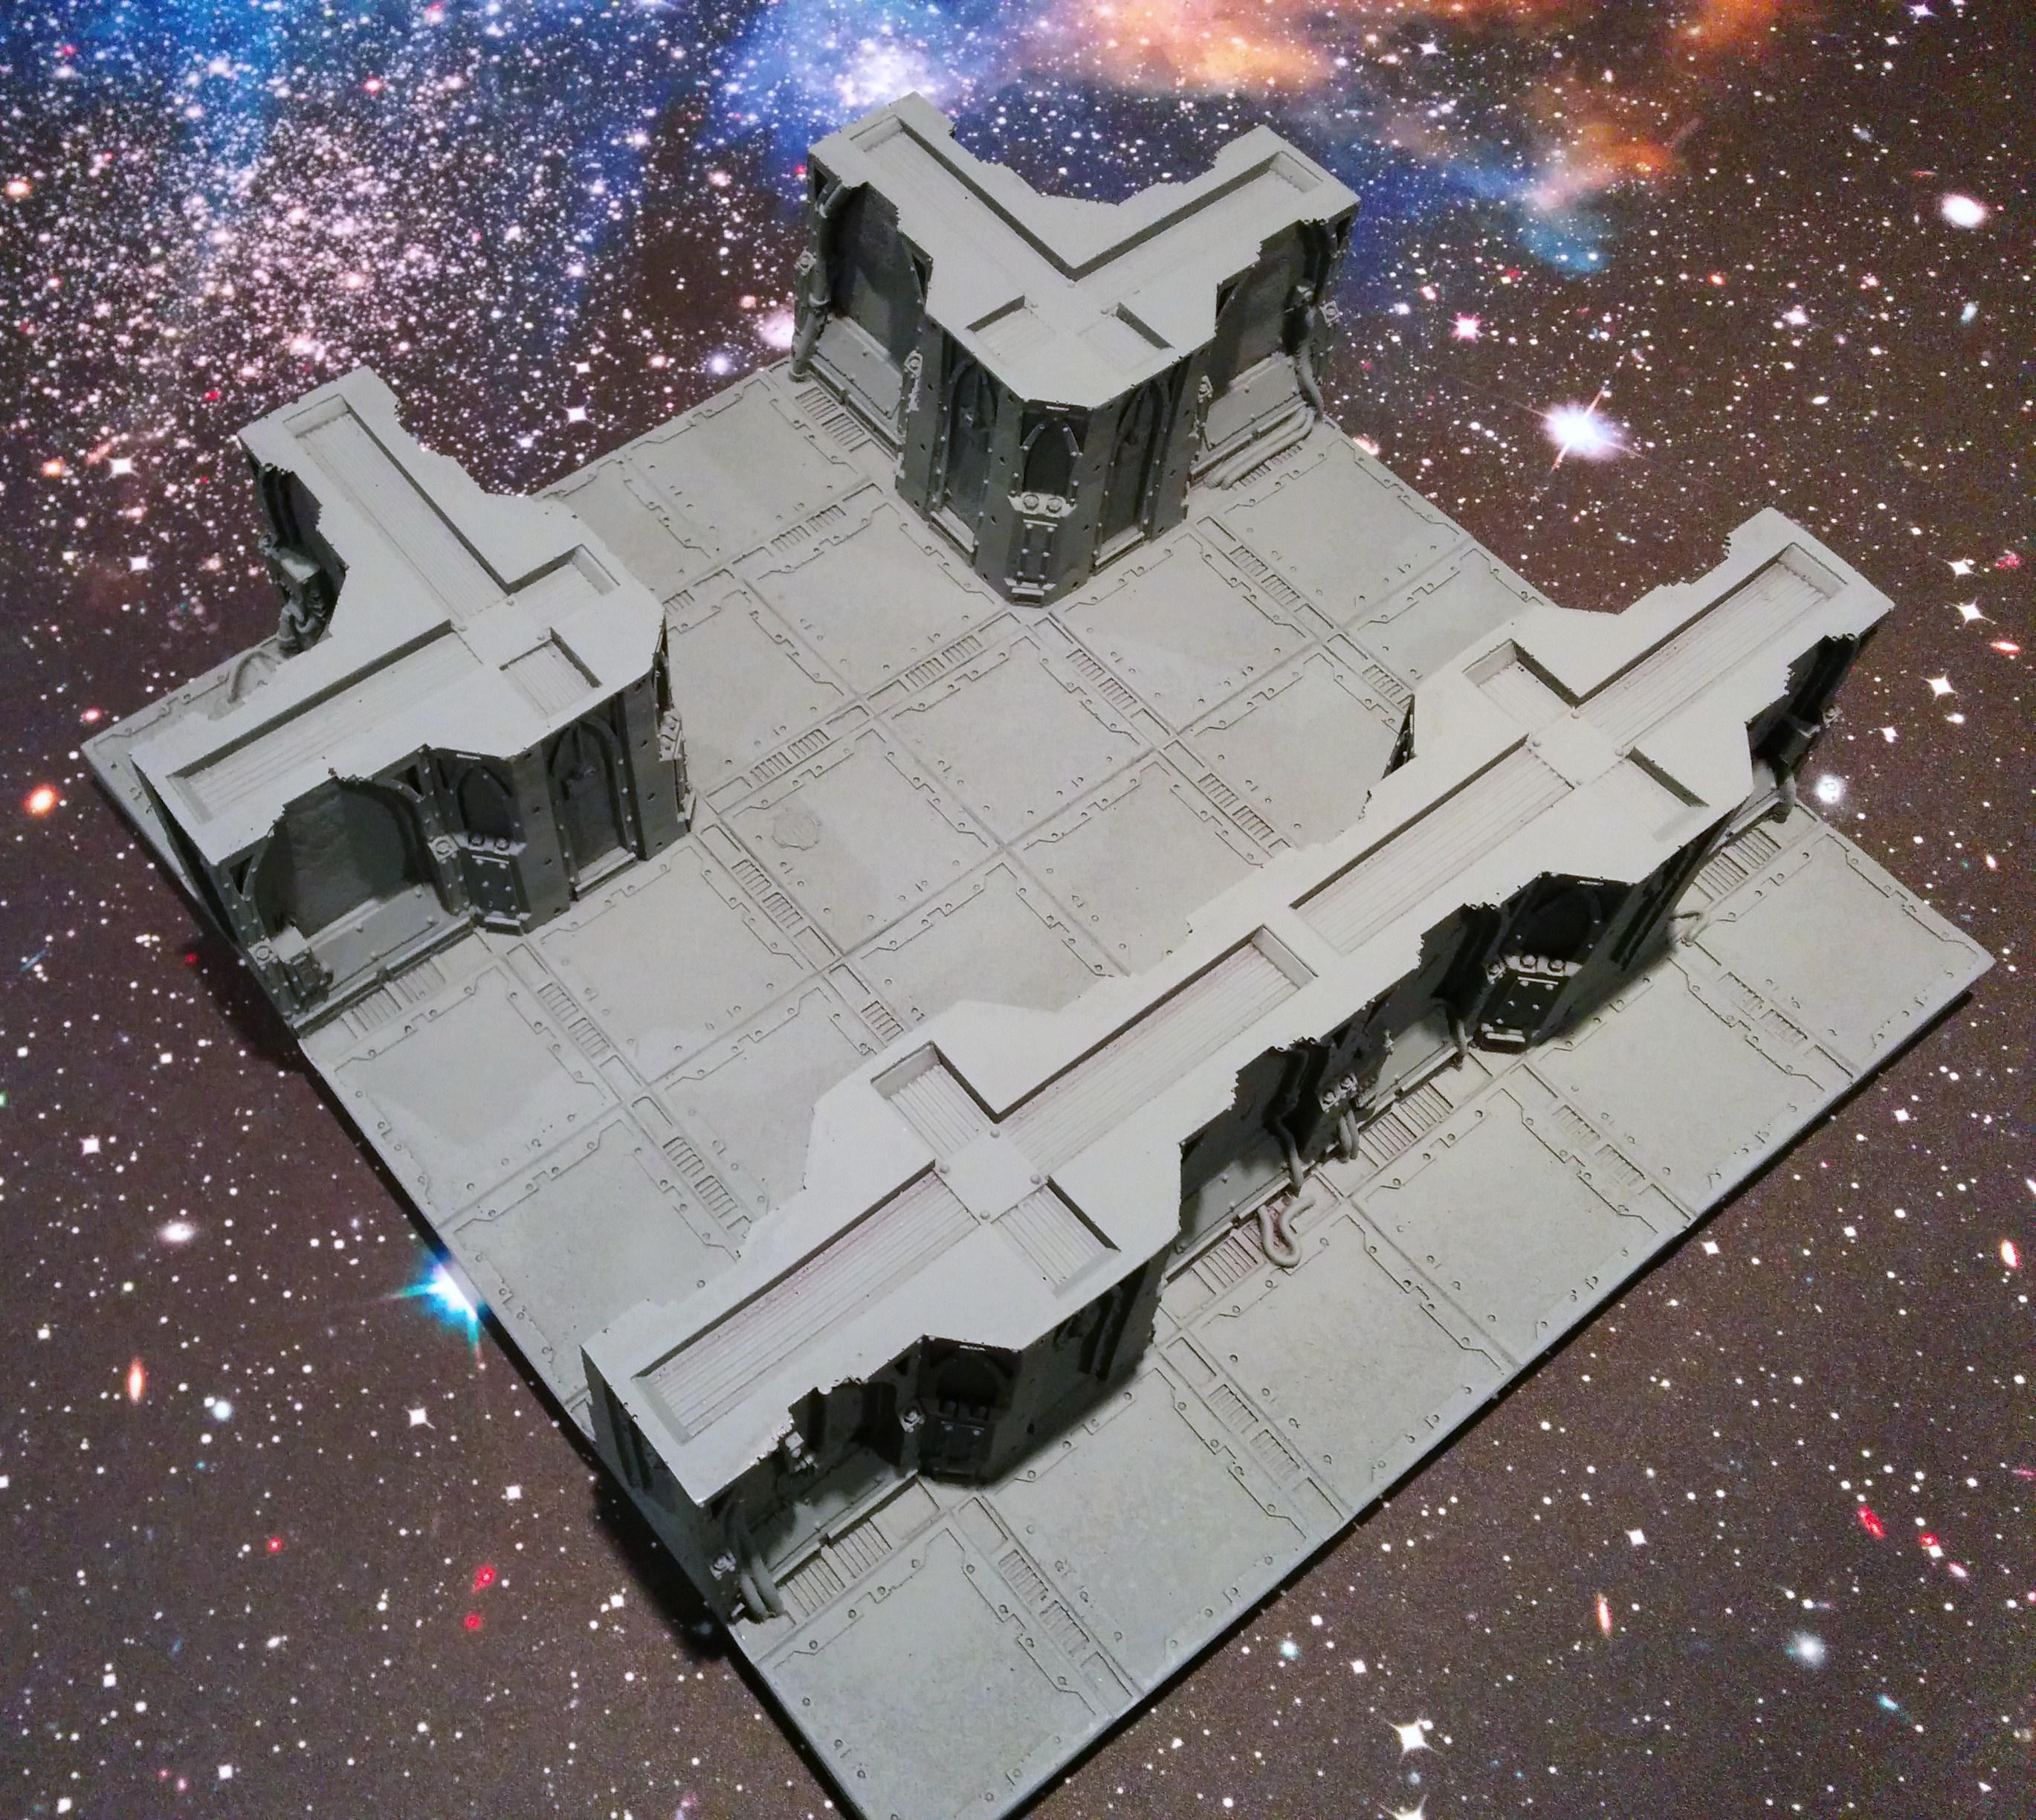 Painting miniatures color master primer - In This Particular Case The Gray Krylon Primer Has The Added Benefit Of Being My Base Color For The Open Areas On This Piece Of Terrain